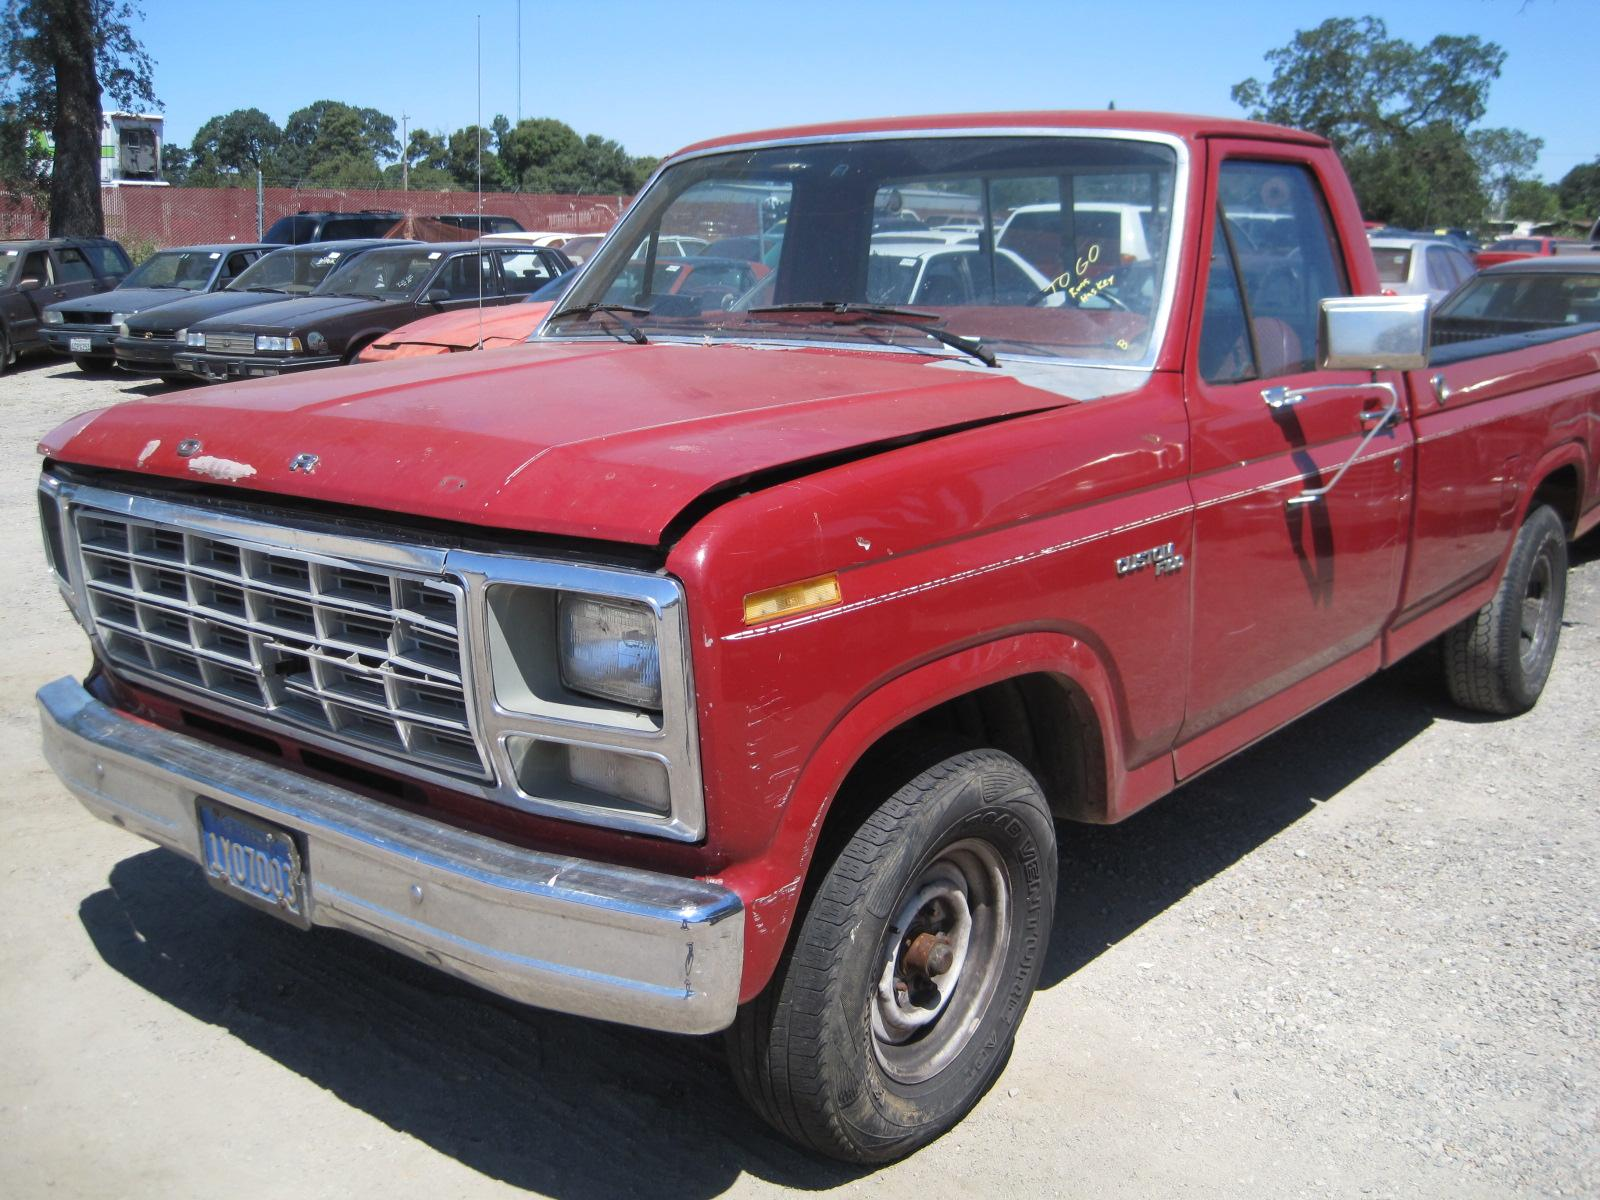 Ford f-150 1980 photo - 9